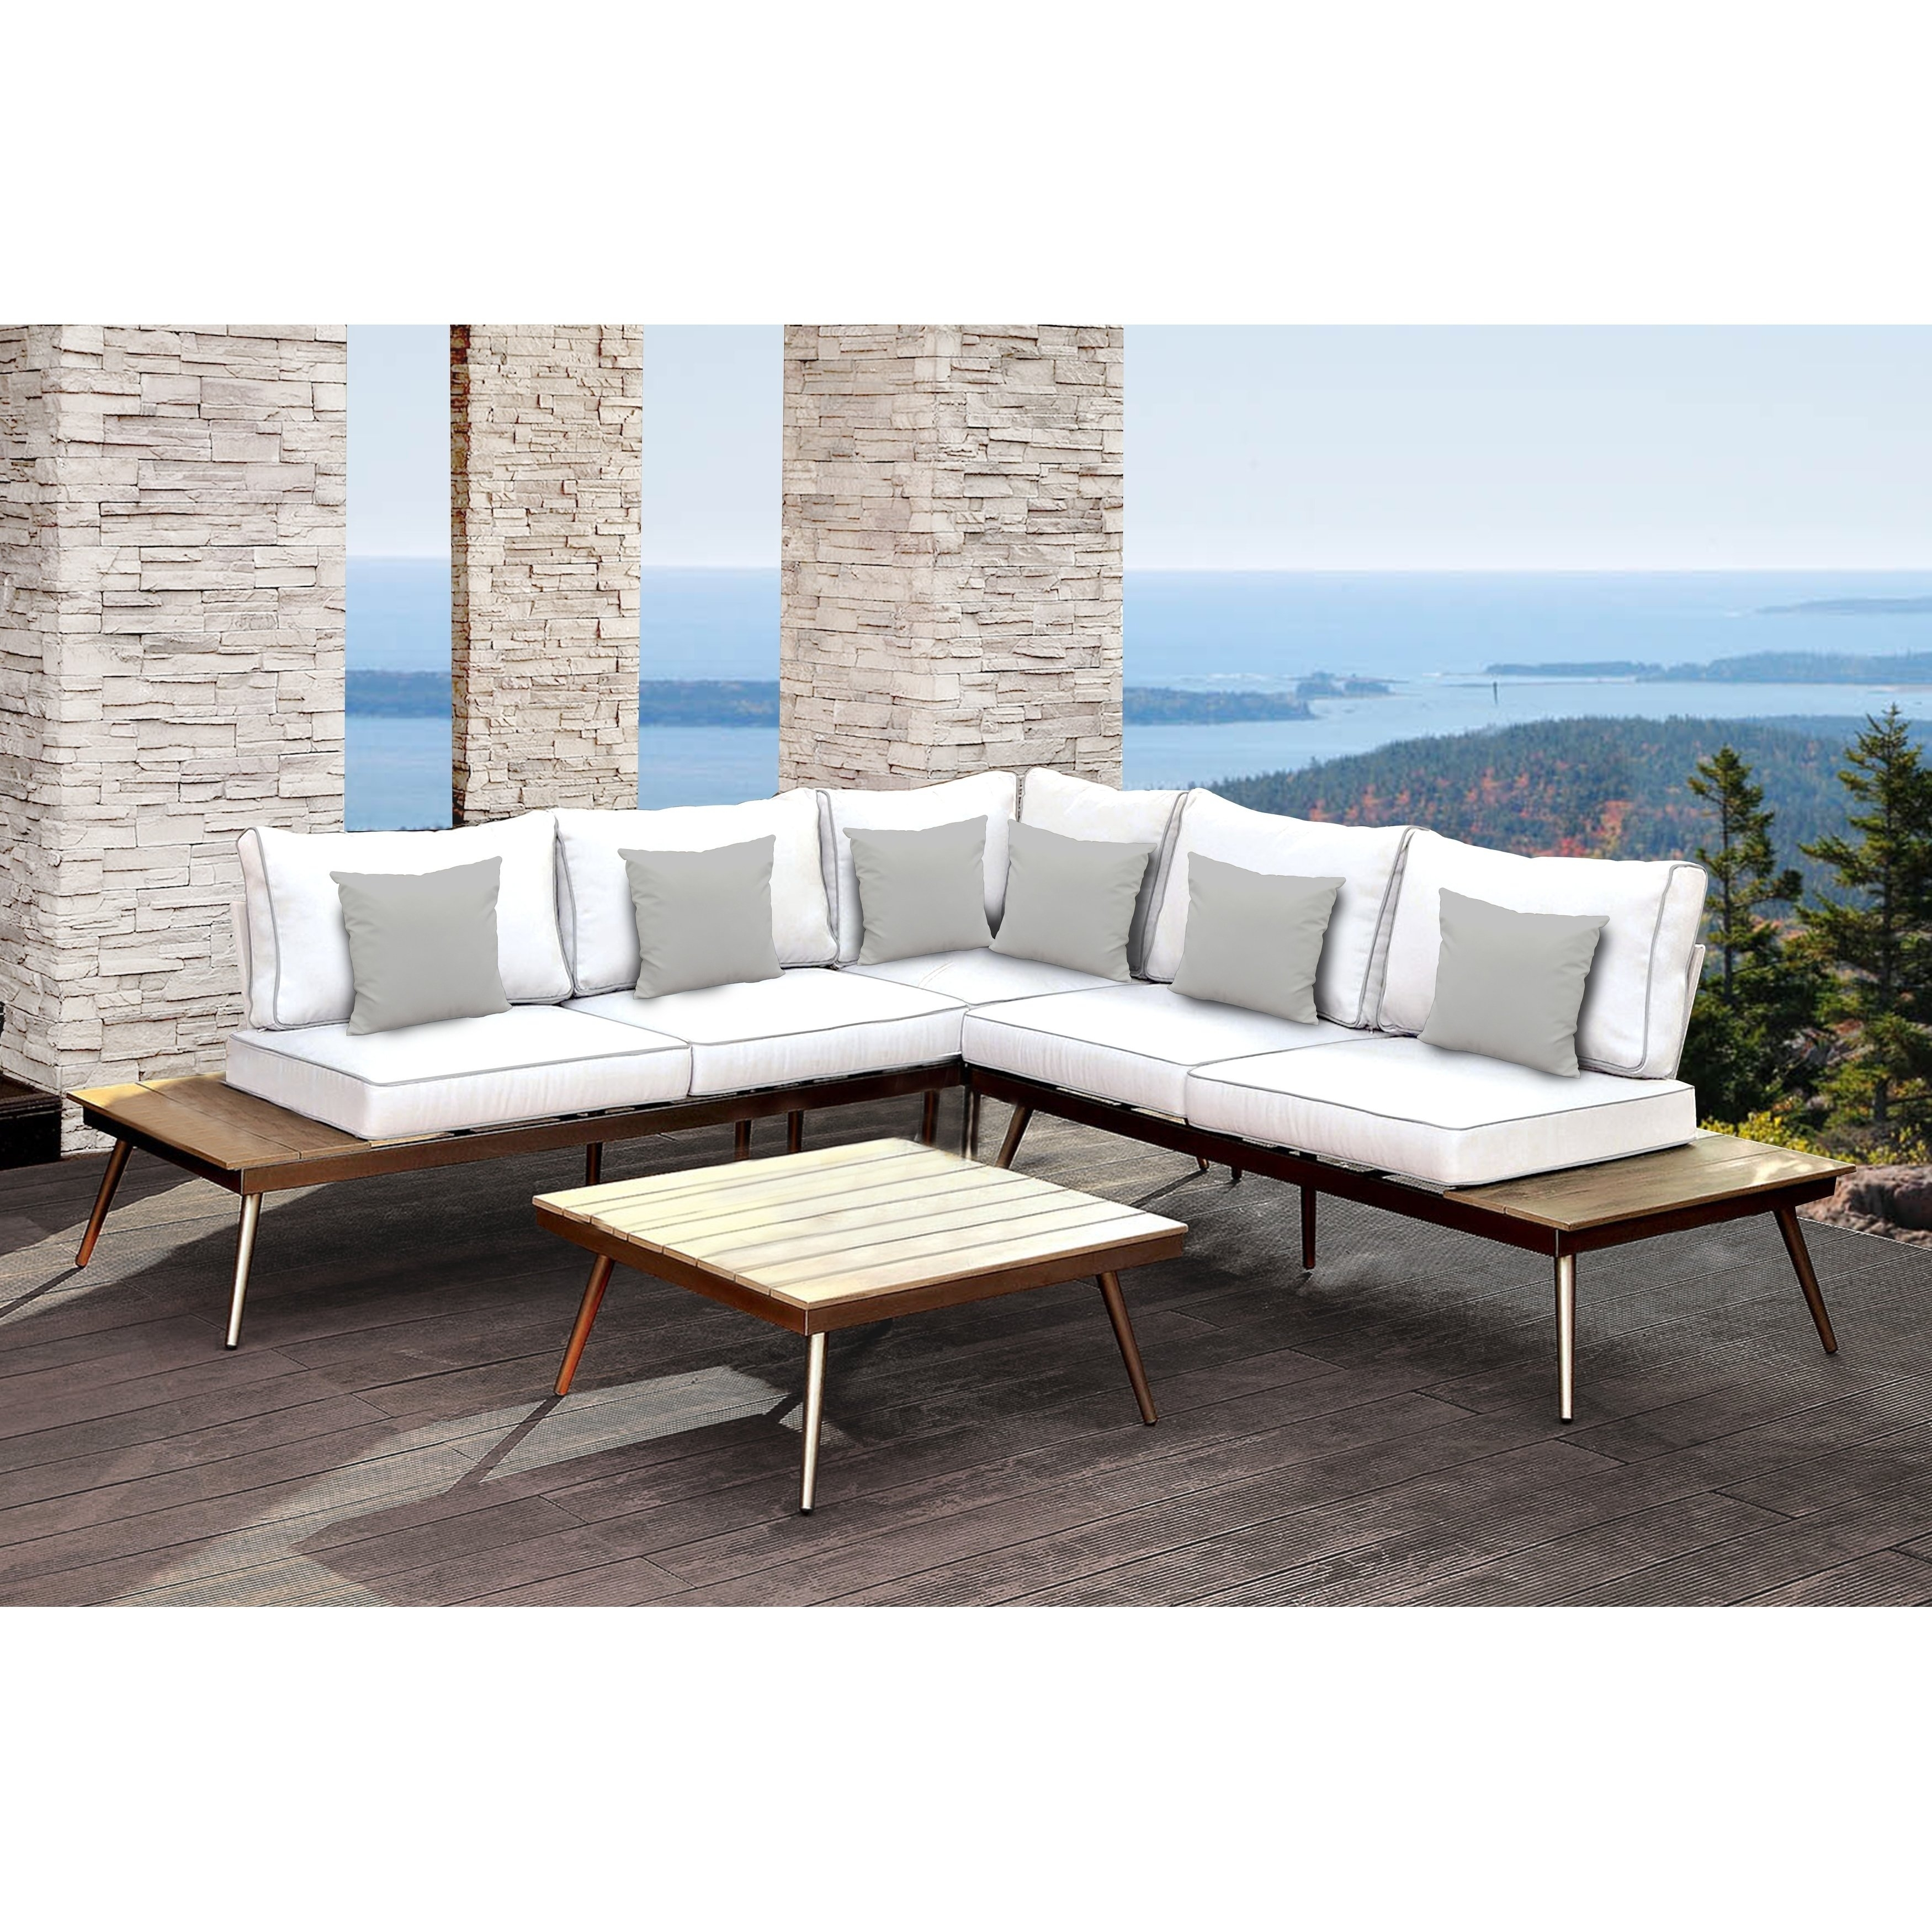 Shop Solis Artem 2-Piece Outdoor Sectional Patio Set - White, Grey pertaining to Norfolk Grey 6 Piece Sectionals (Image 27 of 30)